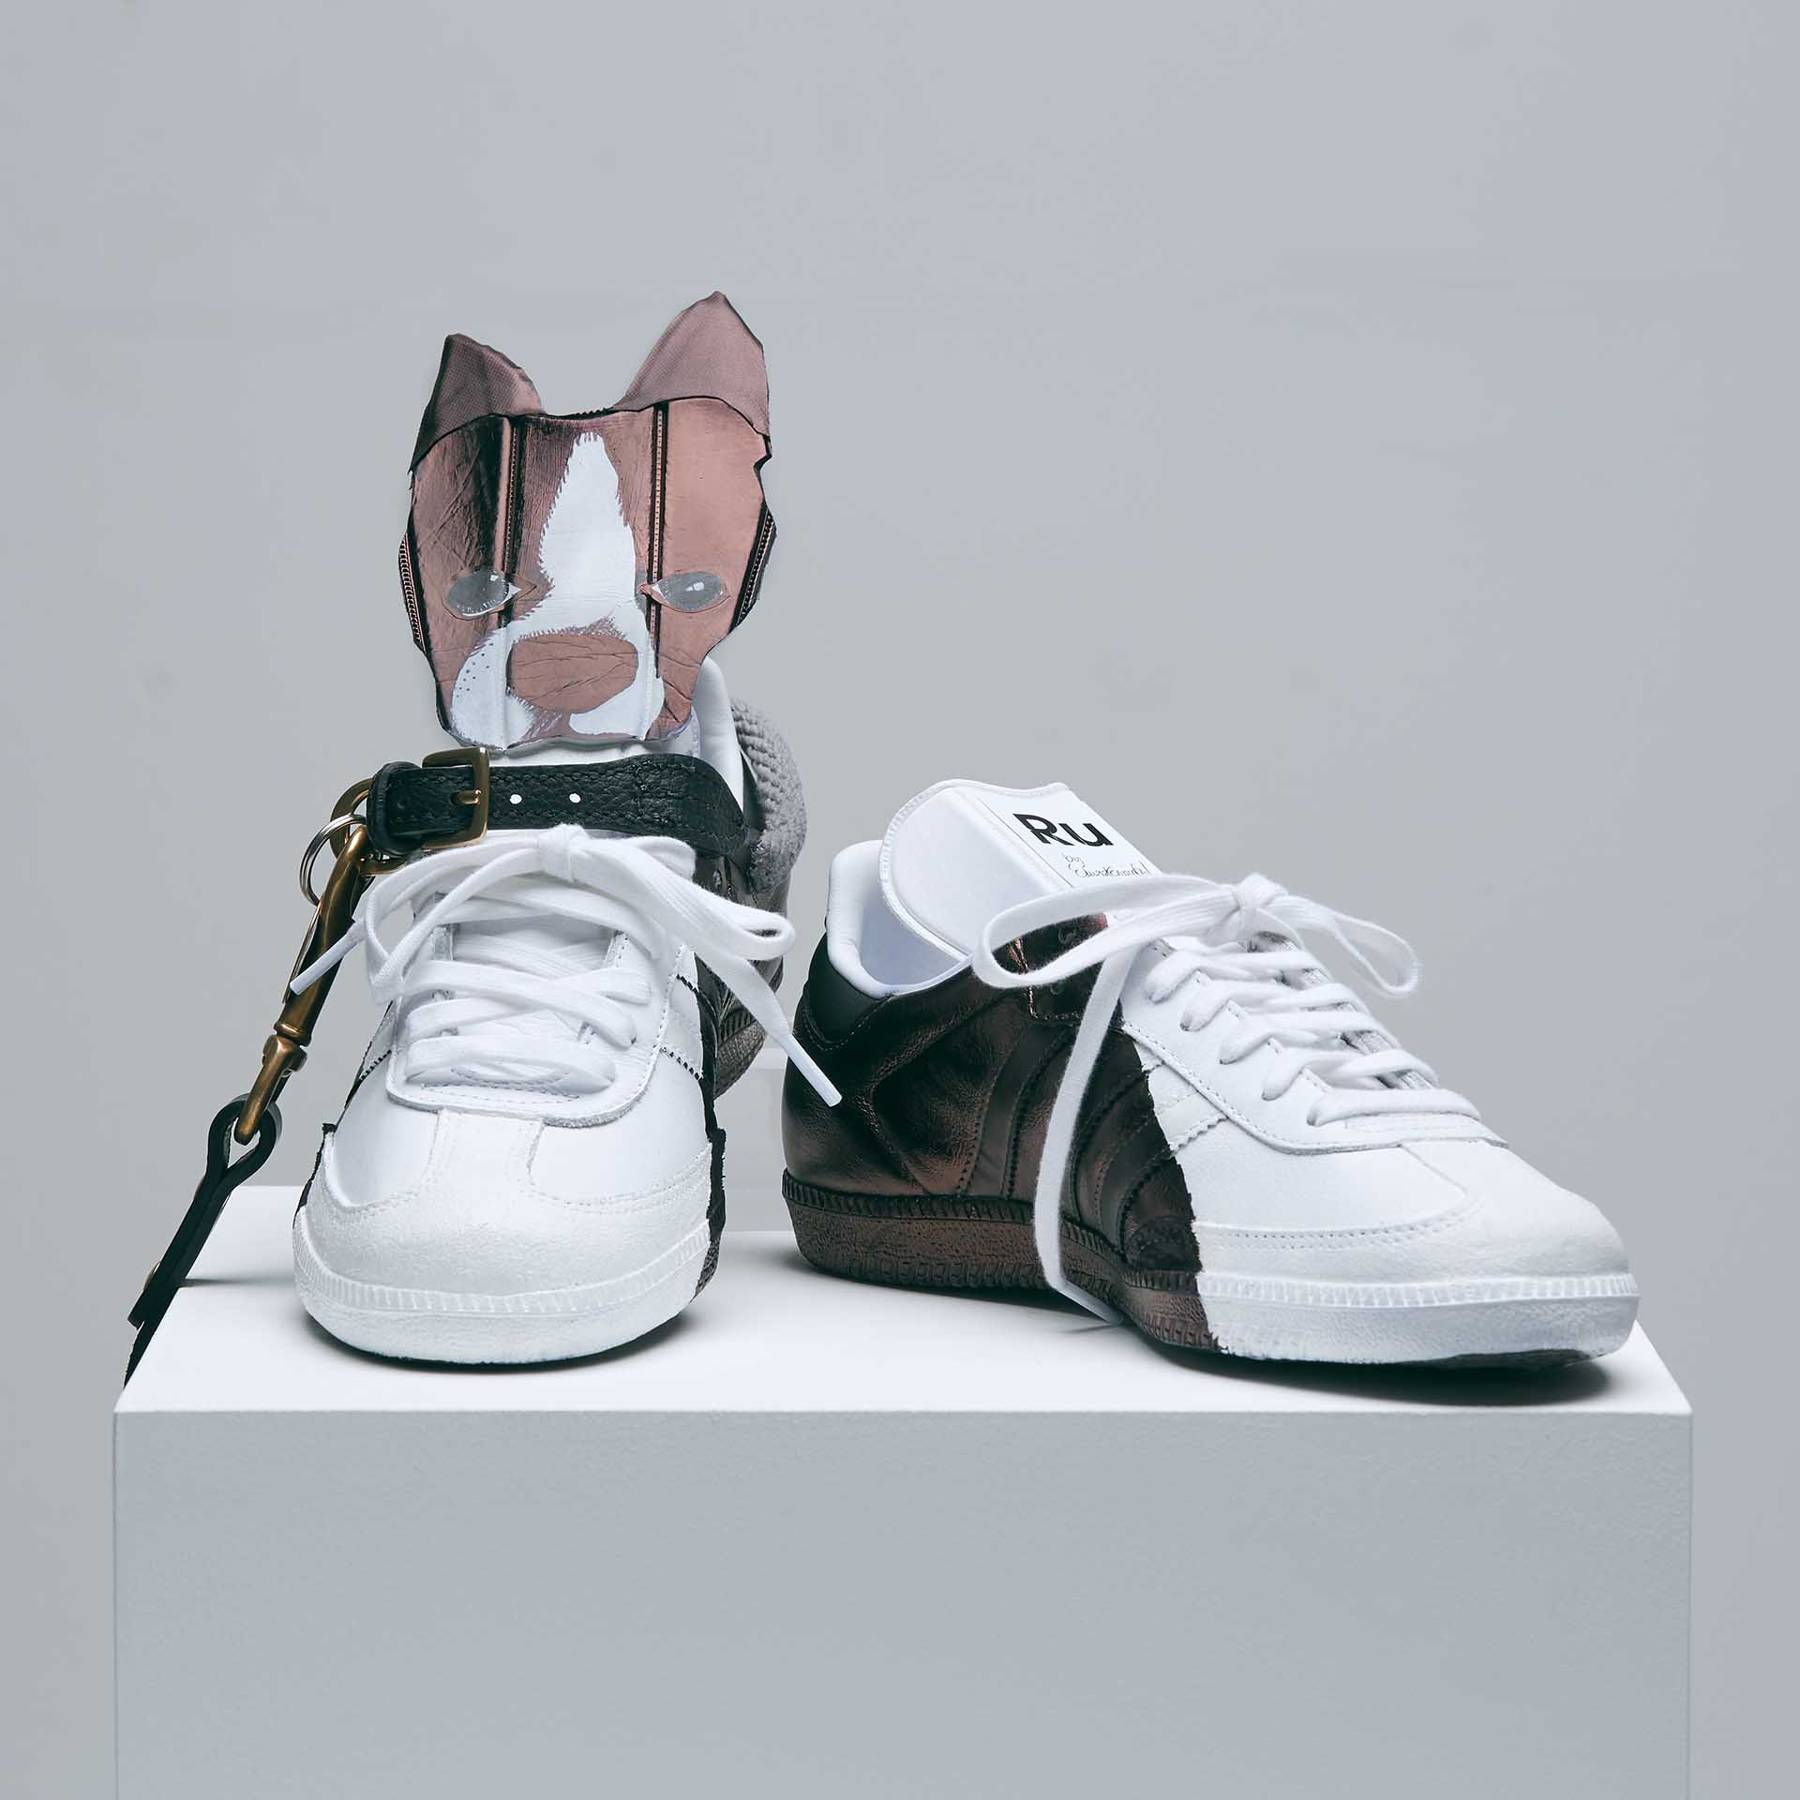 66327d6884d3bd Adidas Prouder Campaign Launches With Edward Enninful, Kate Moss And Naomi  Campbell | British Vogue